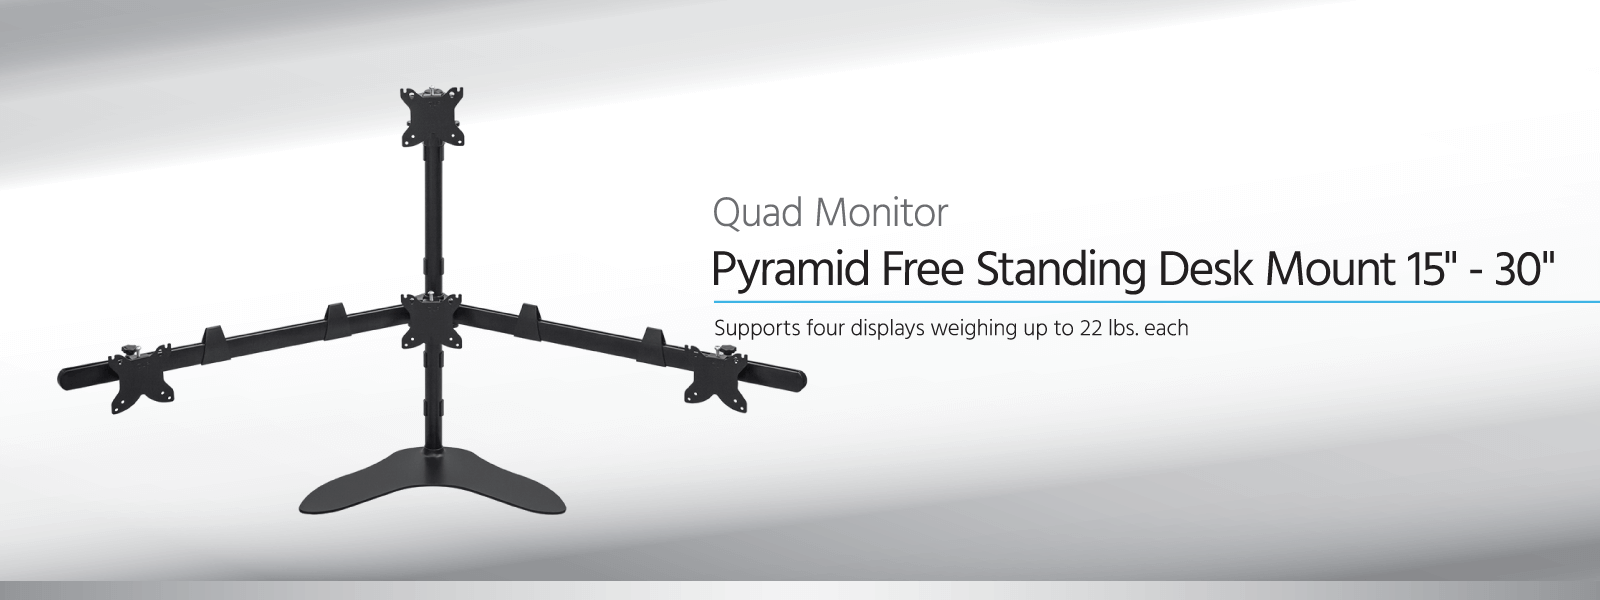 Quad Monitor Pyramid Free Standing Desk Mount